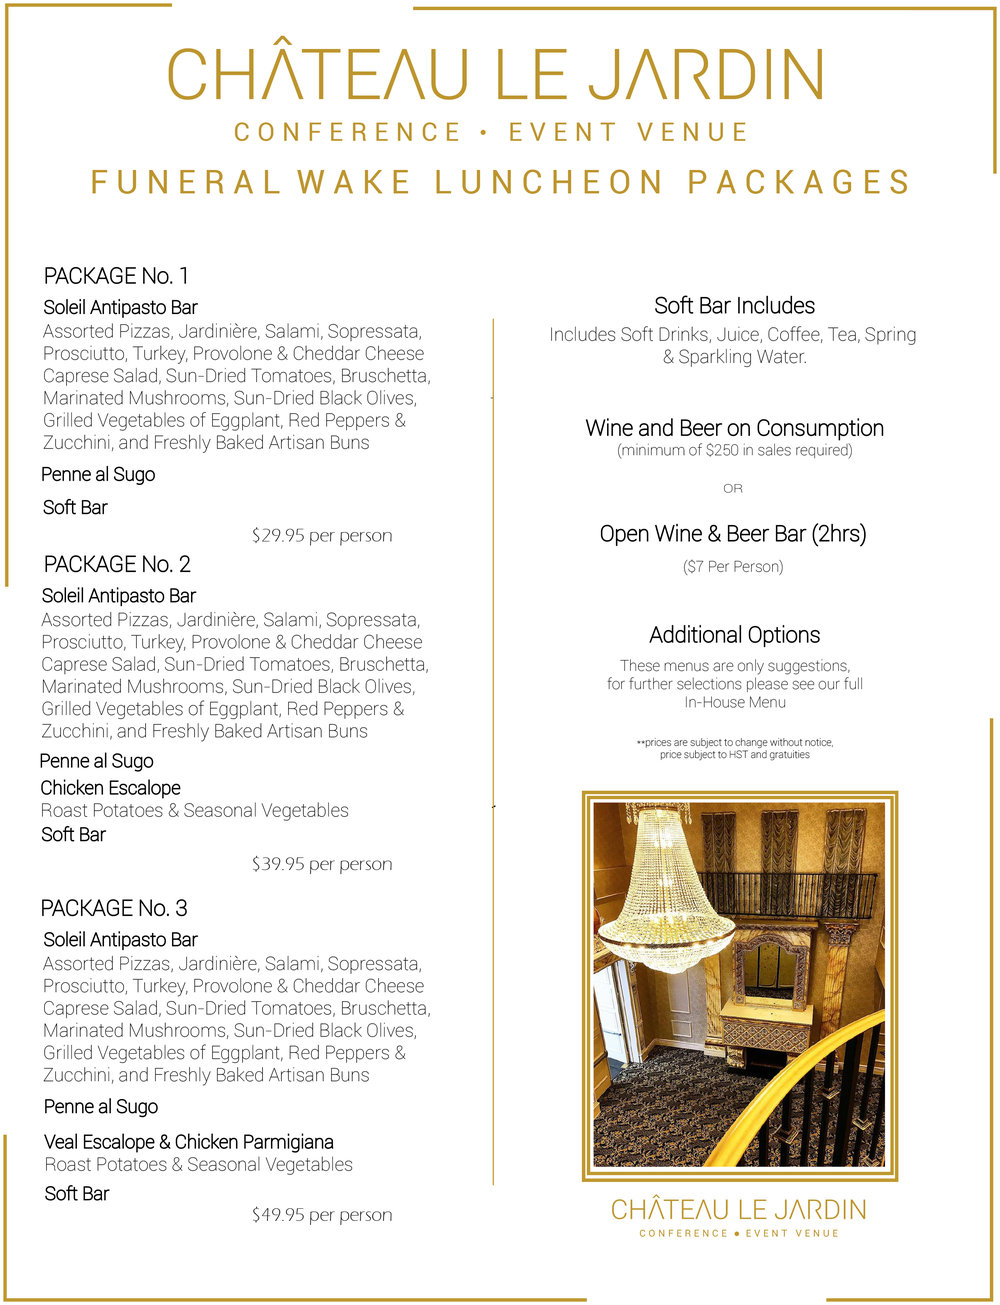 Graphic Design Work by Christian Bebis : Funeral Wake Package @ Chateau Le Jardin